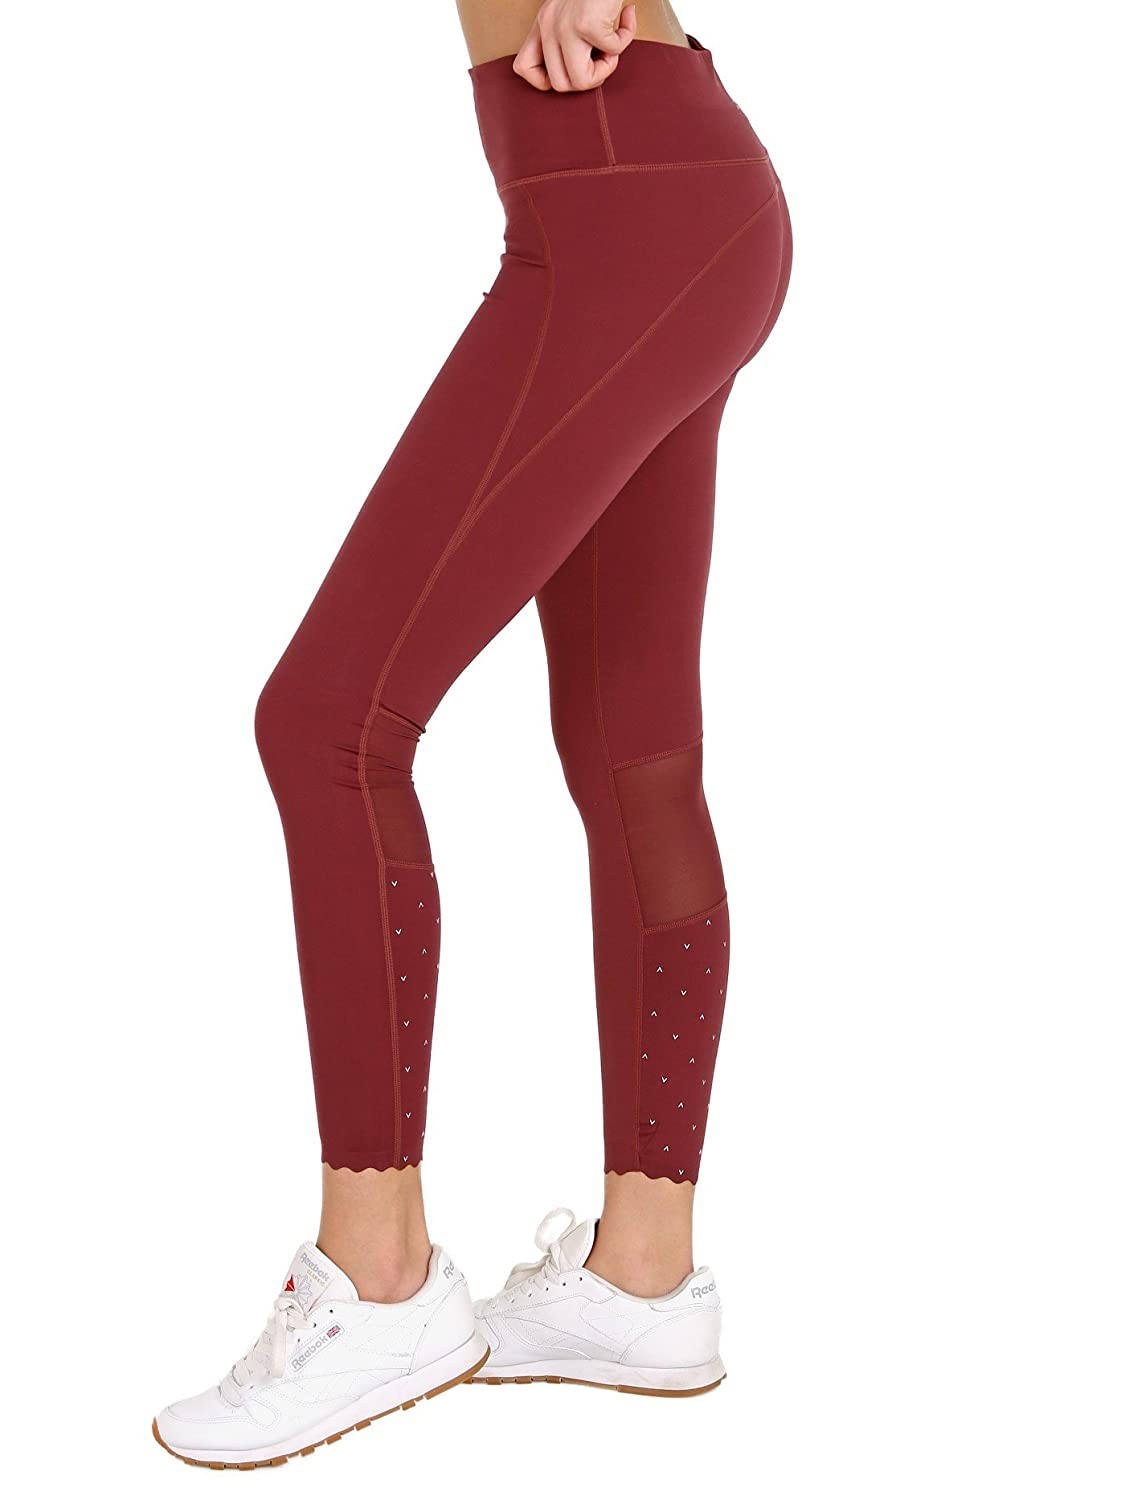 eefad4bfac Amazon.com: Varley Emory Tight Windsor Wine: Clothing